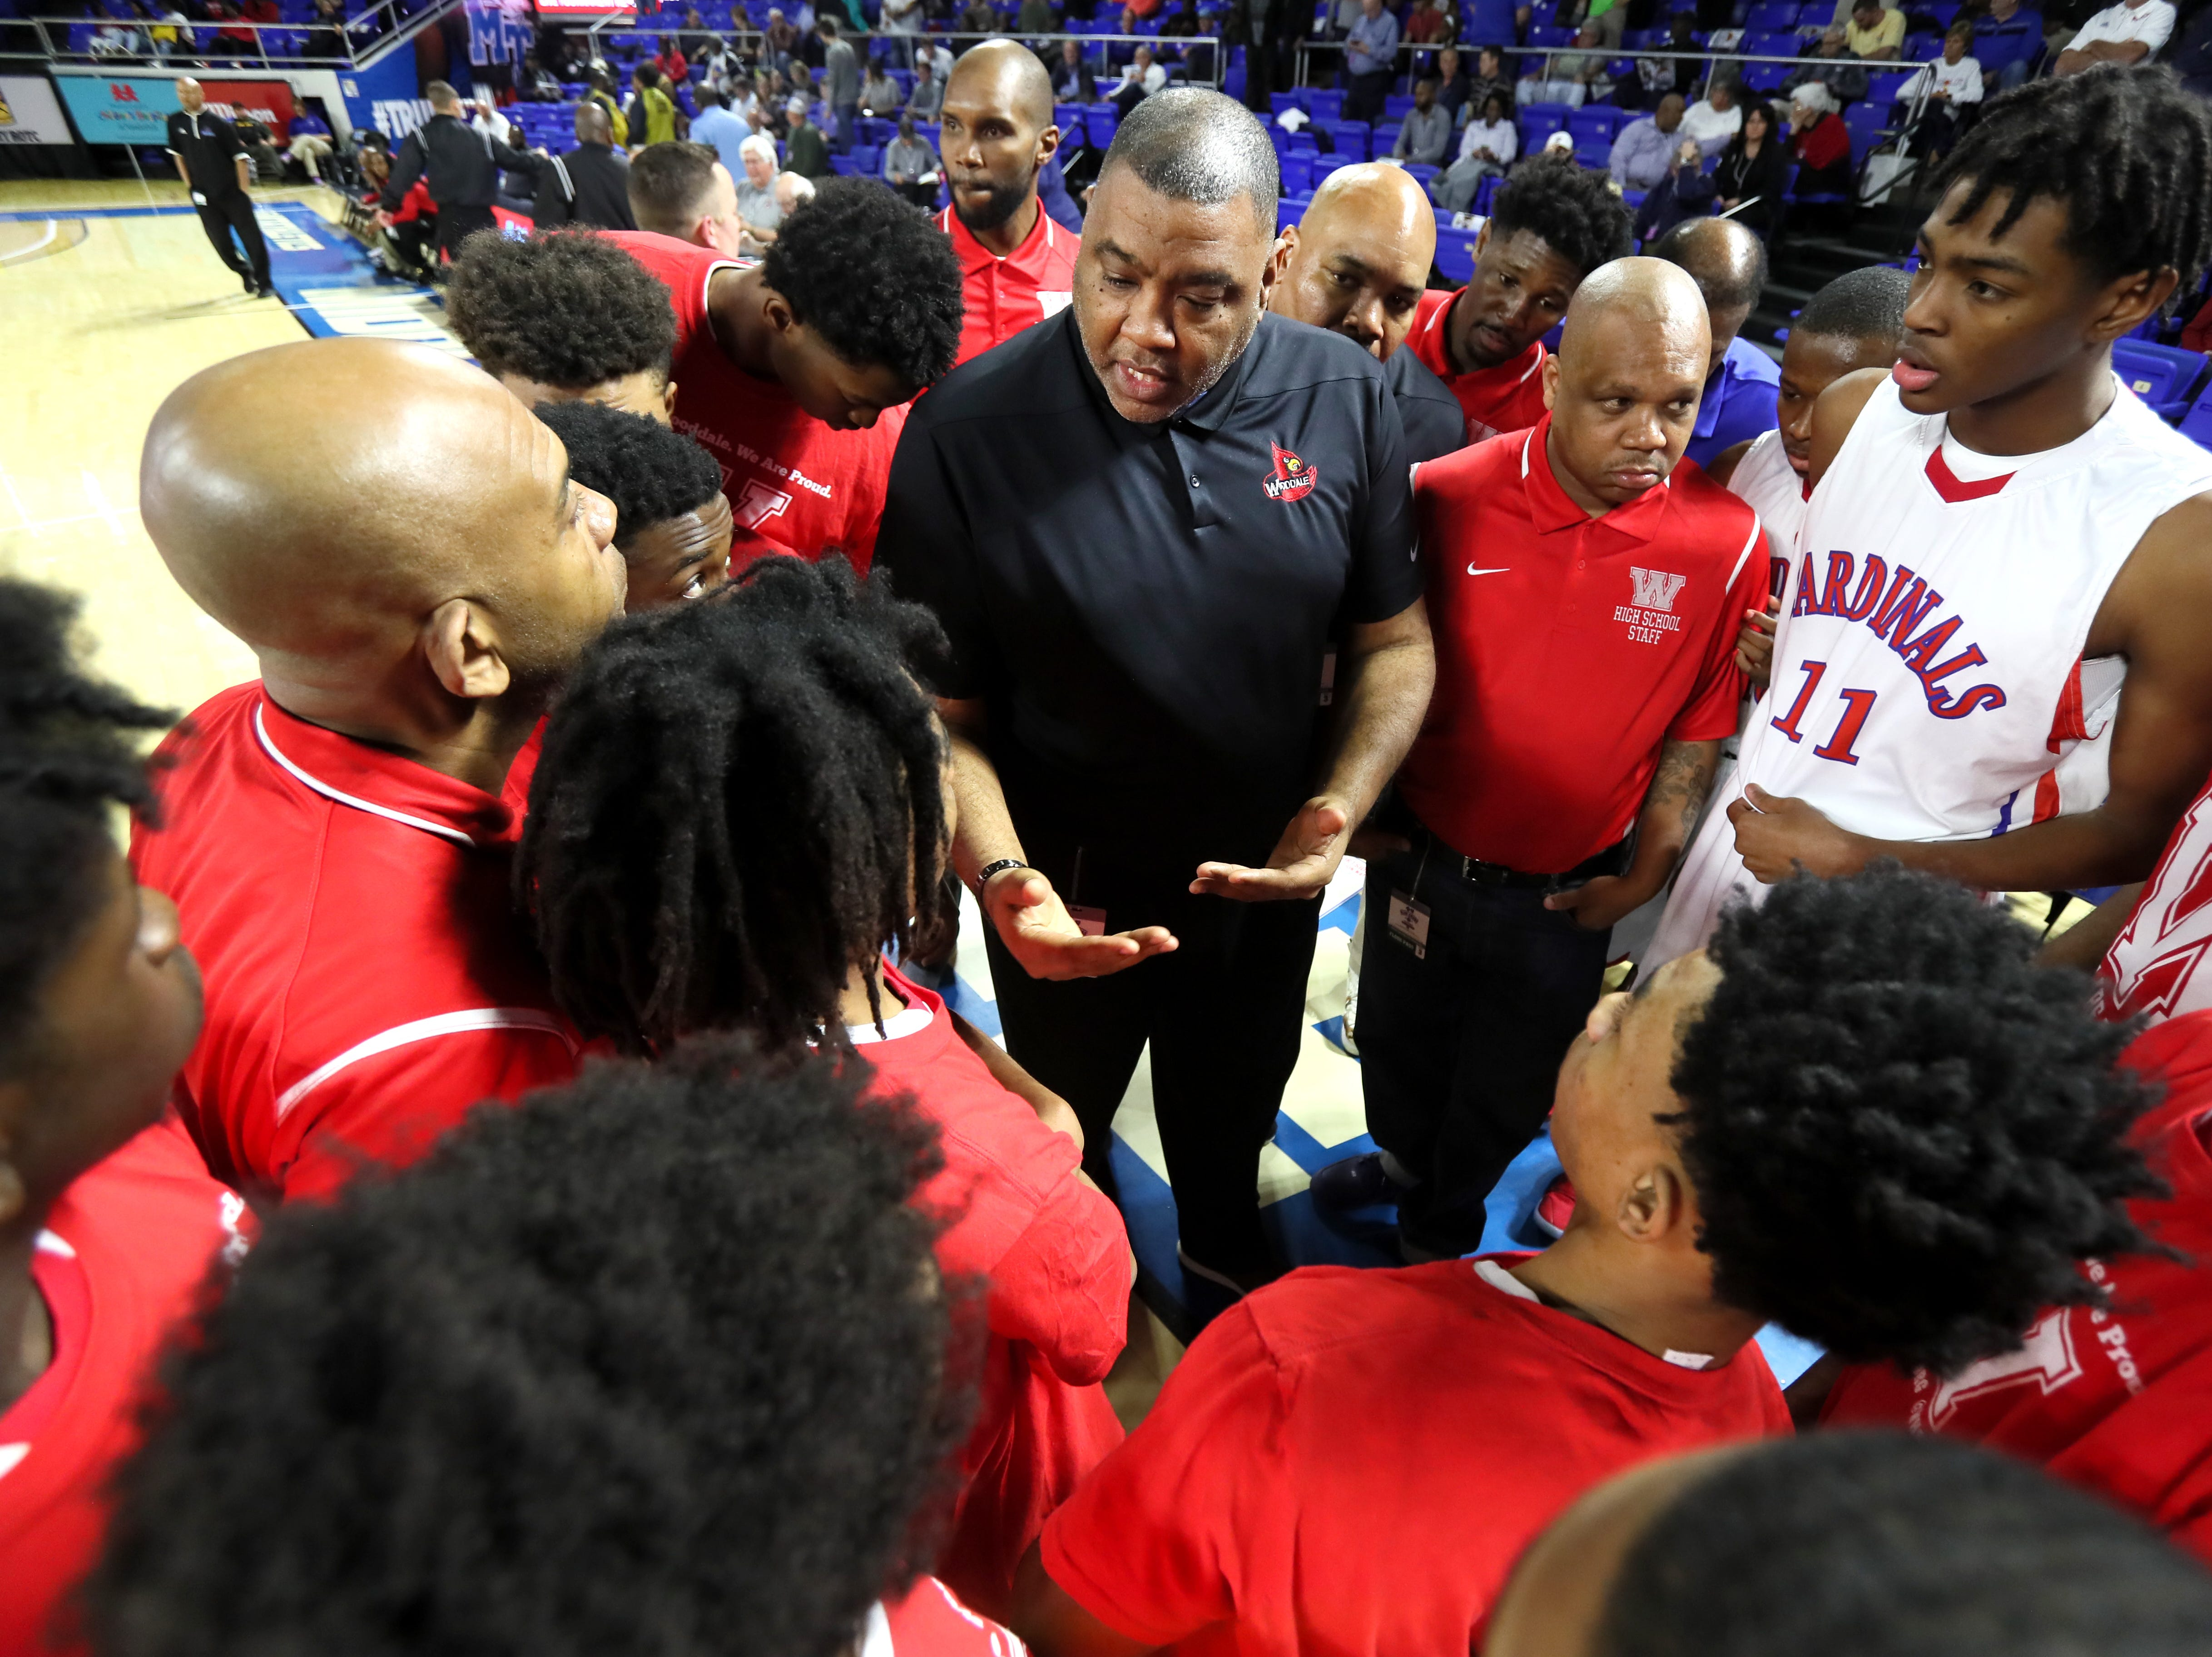 Wooddale Head Coach Keelon Lawson talks to his team before they take on Brainerd during the Class AA boys basketball state semifinal at the Murphy Center in Murfreesboro, Tenn. on Friday, March 15, 2019.